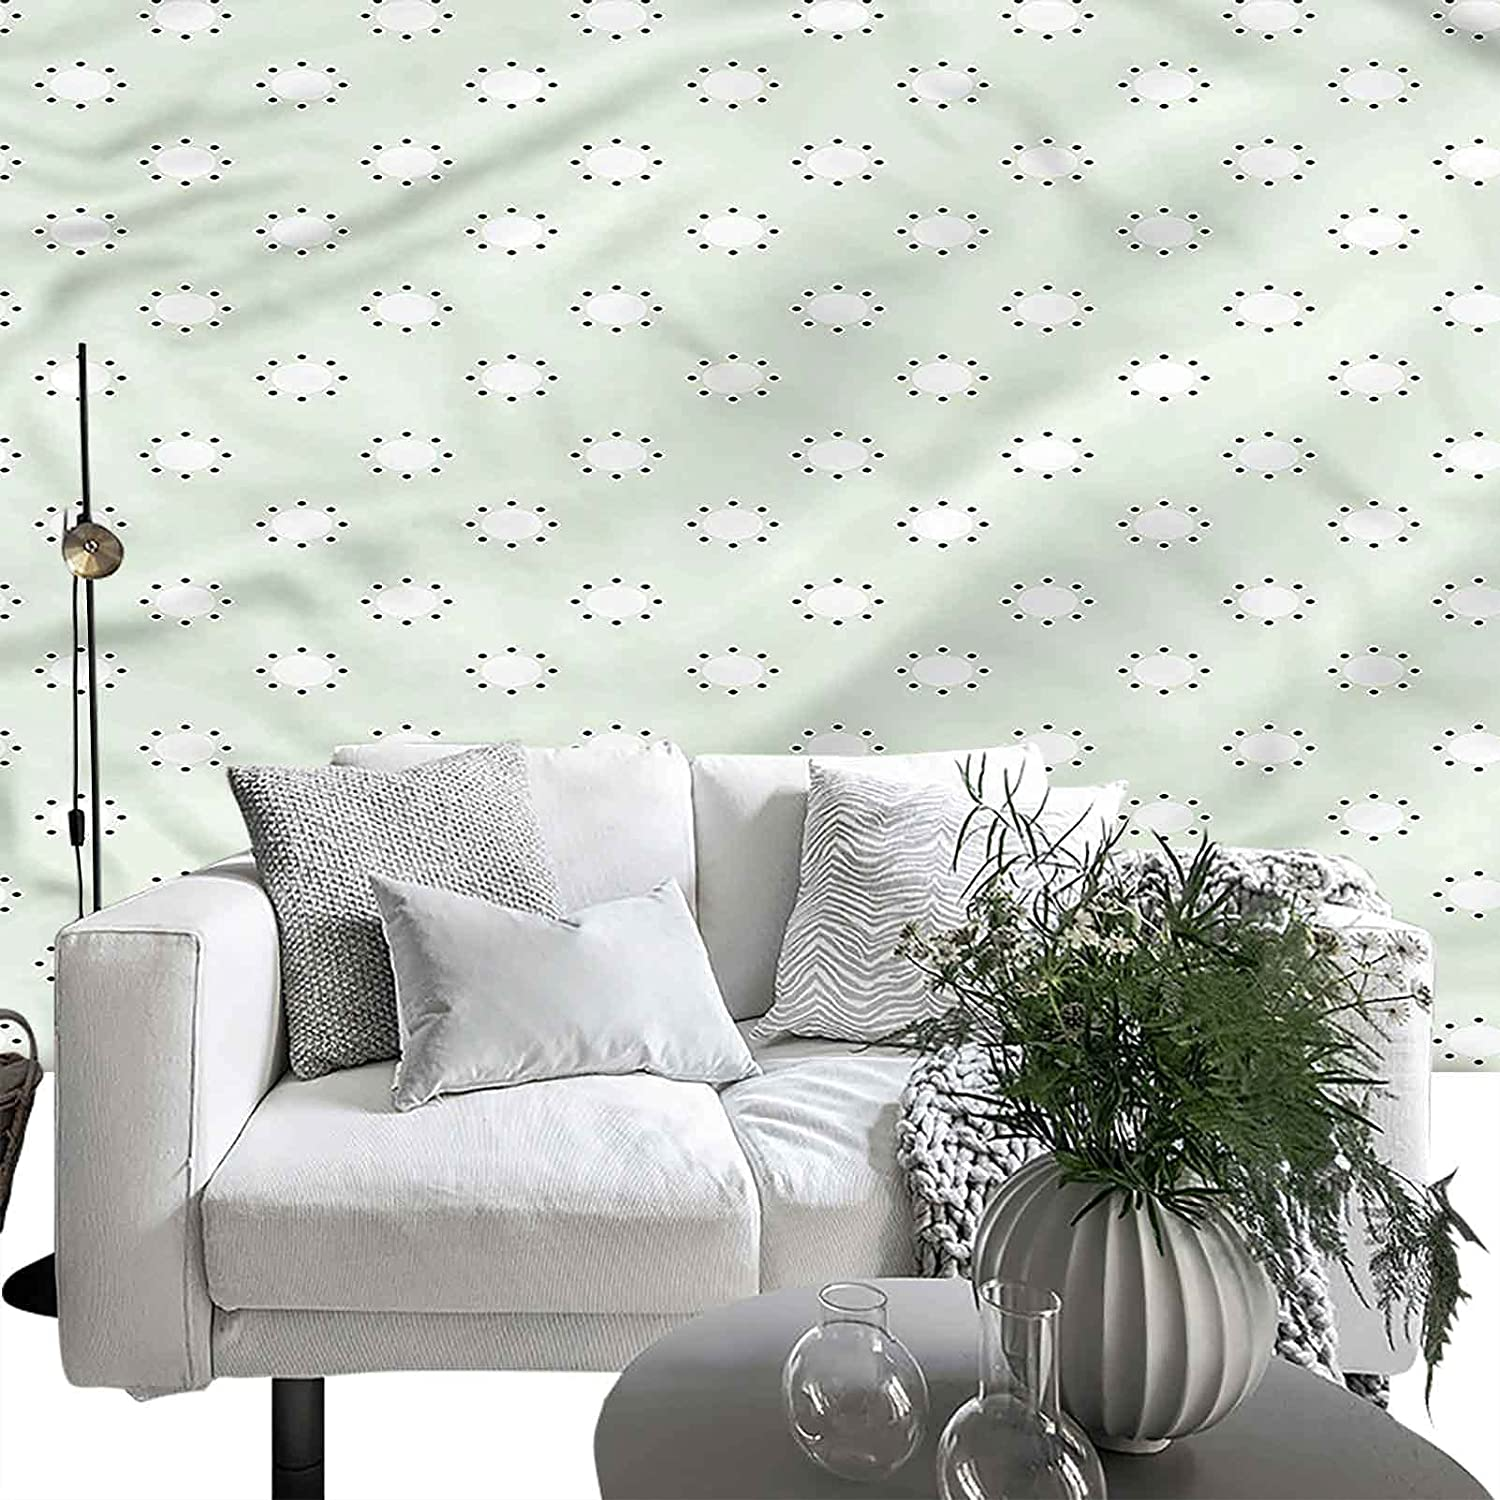 Wall Sticker Max 63% OFF for Bedroom Max 82% OFF Living Room Round Pol with Blue Circles